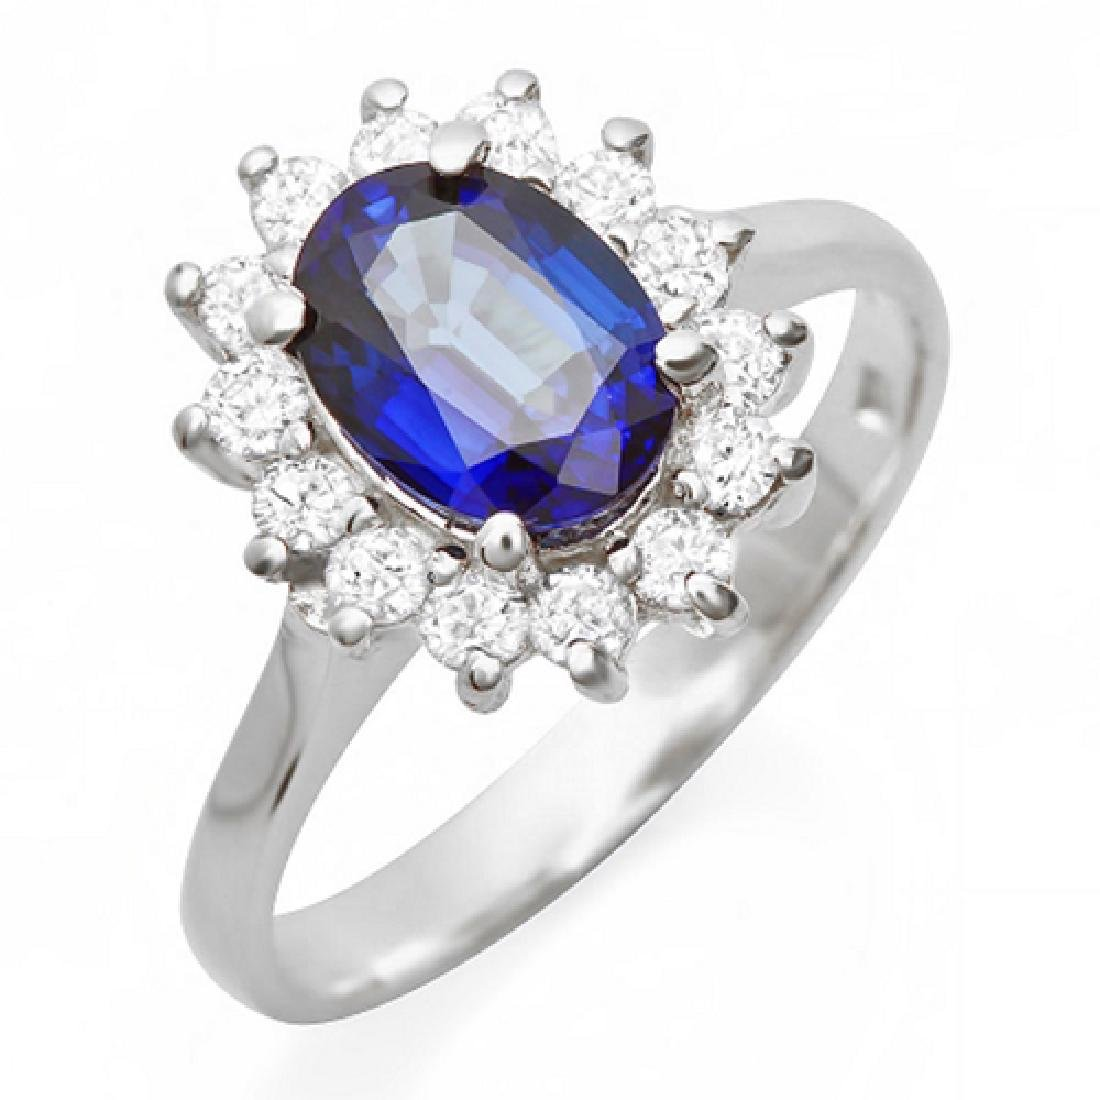 1.90 Carat Natural Sapphire 18K Solid White Gold